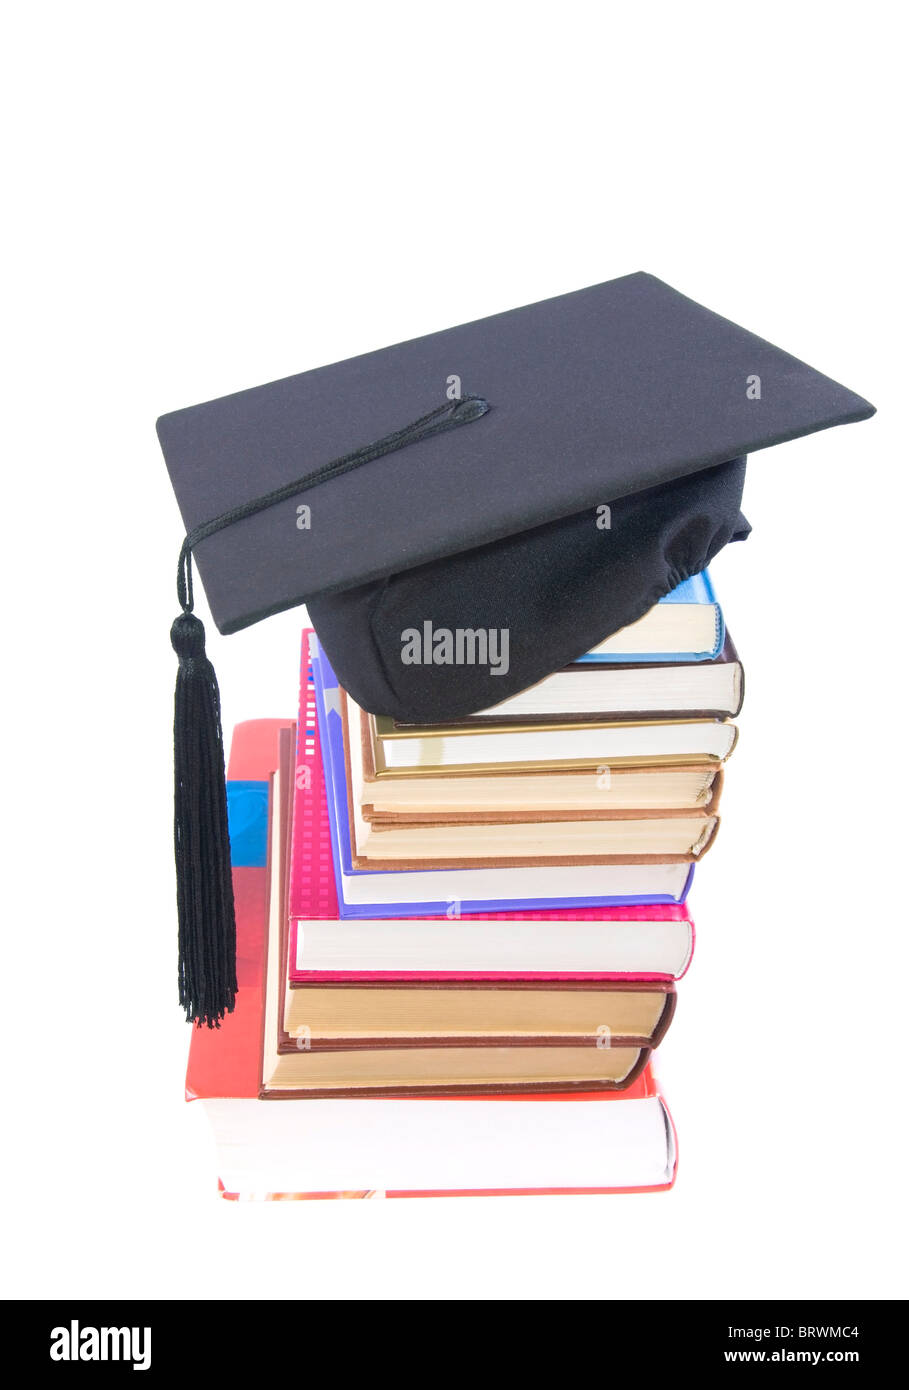 Student hat on a tower made of books, against a white background - Education concept - Stock Image